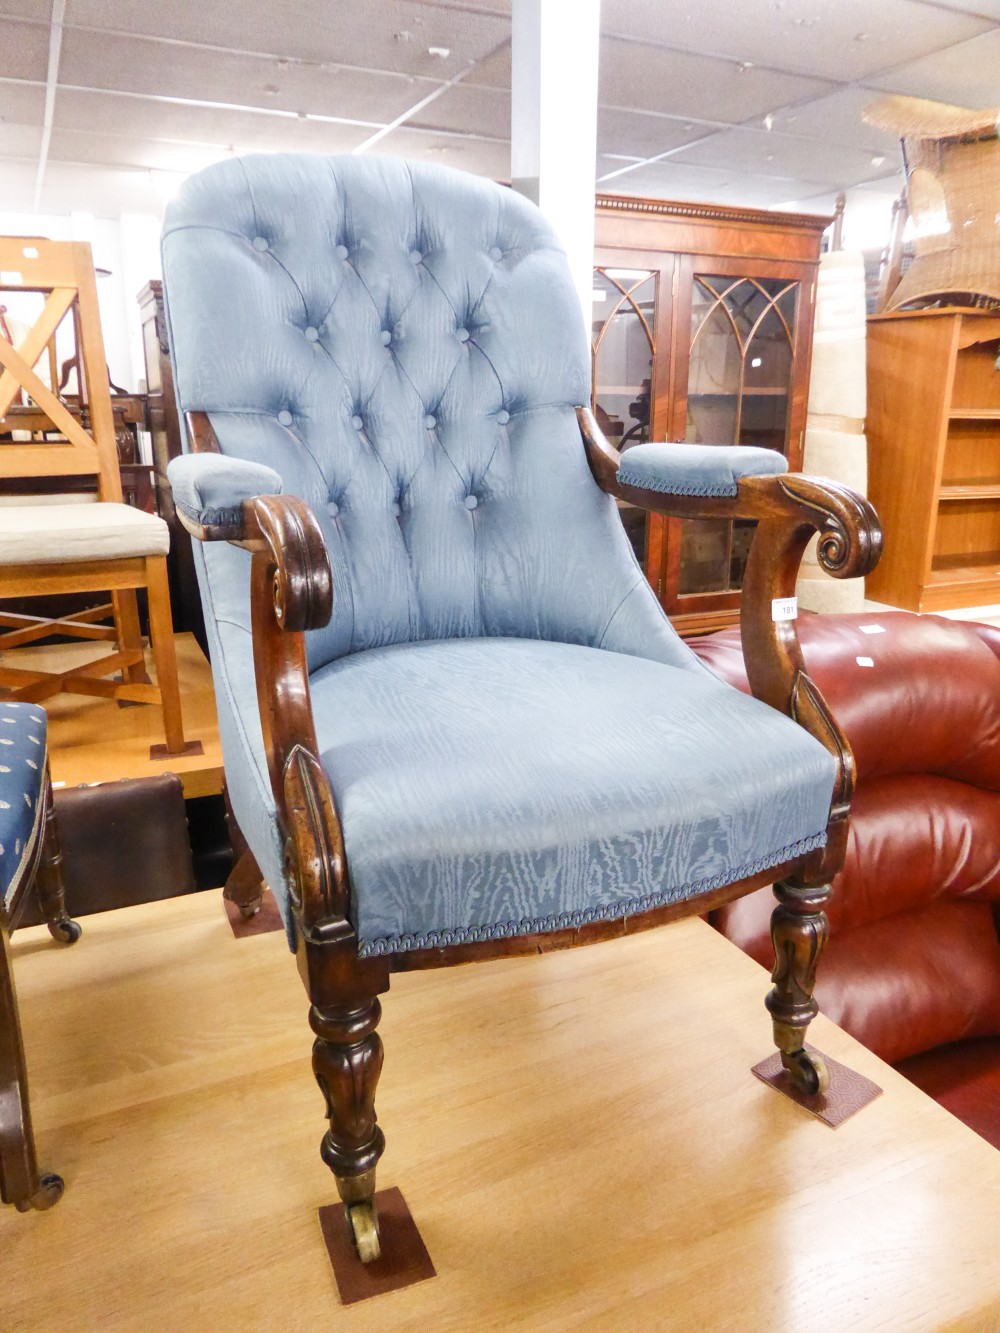 Lot 181 - A VICTORIAN MAHOGANY SPOON BACK LADY'S CHAIR